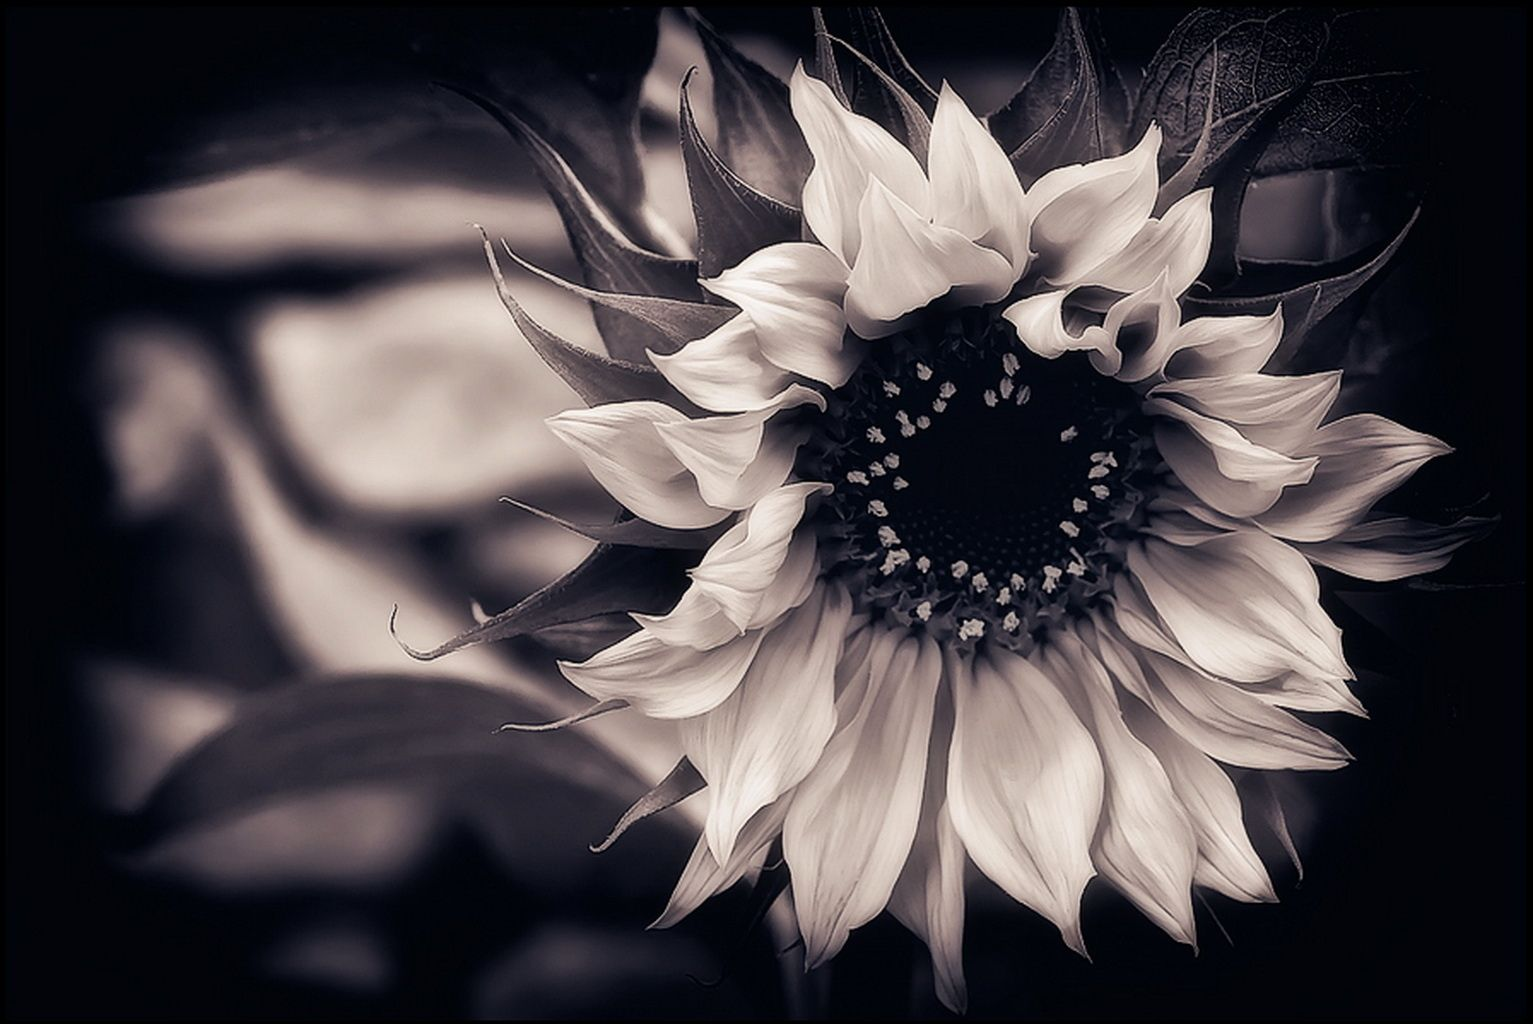 Black And White Sunflower Photography Google Search Sunflowers